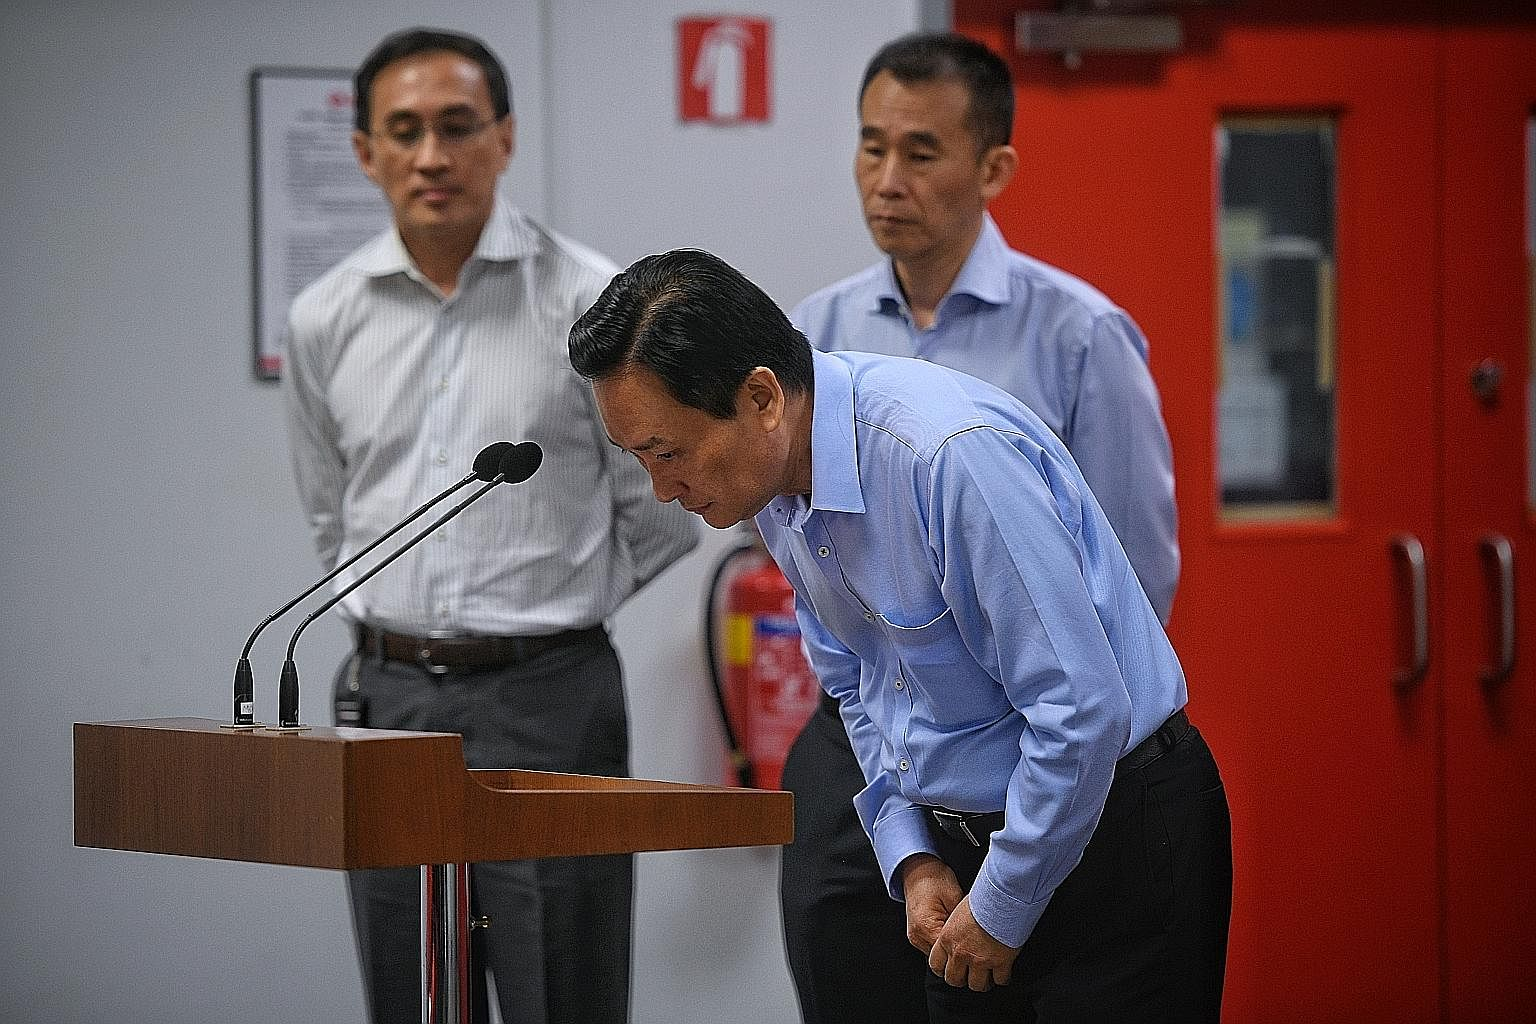 SMRT chairman Seah Moon Ming, flanked by Mr Desmond Kuek (left) and Mr Lee Ling Wee, bowing in apology during the media briefing on Oct 16.